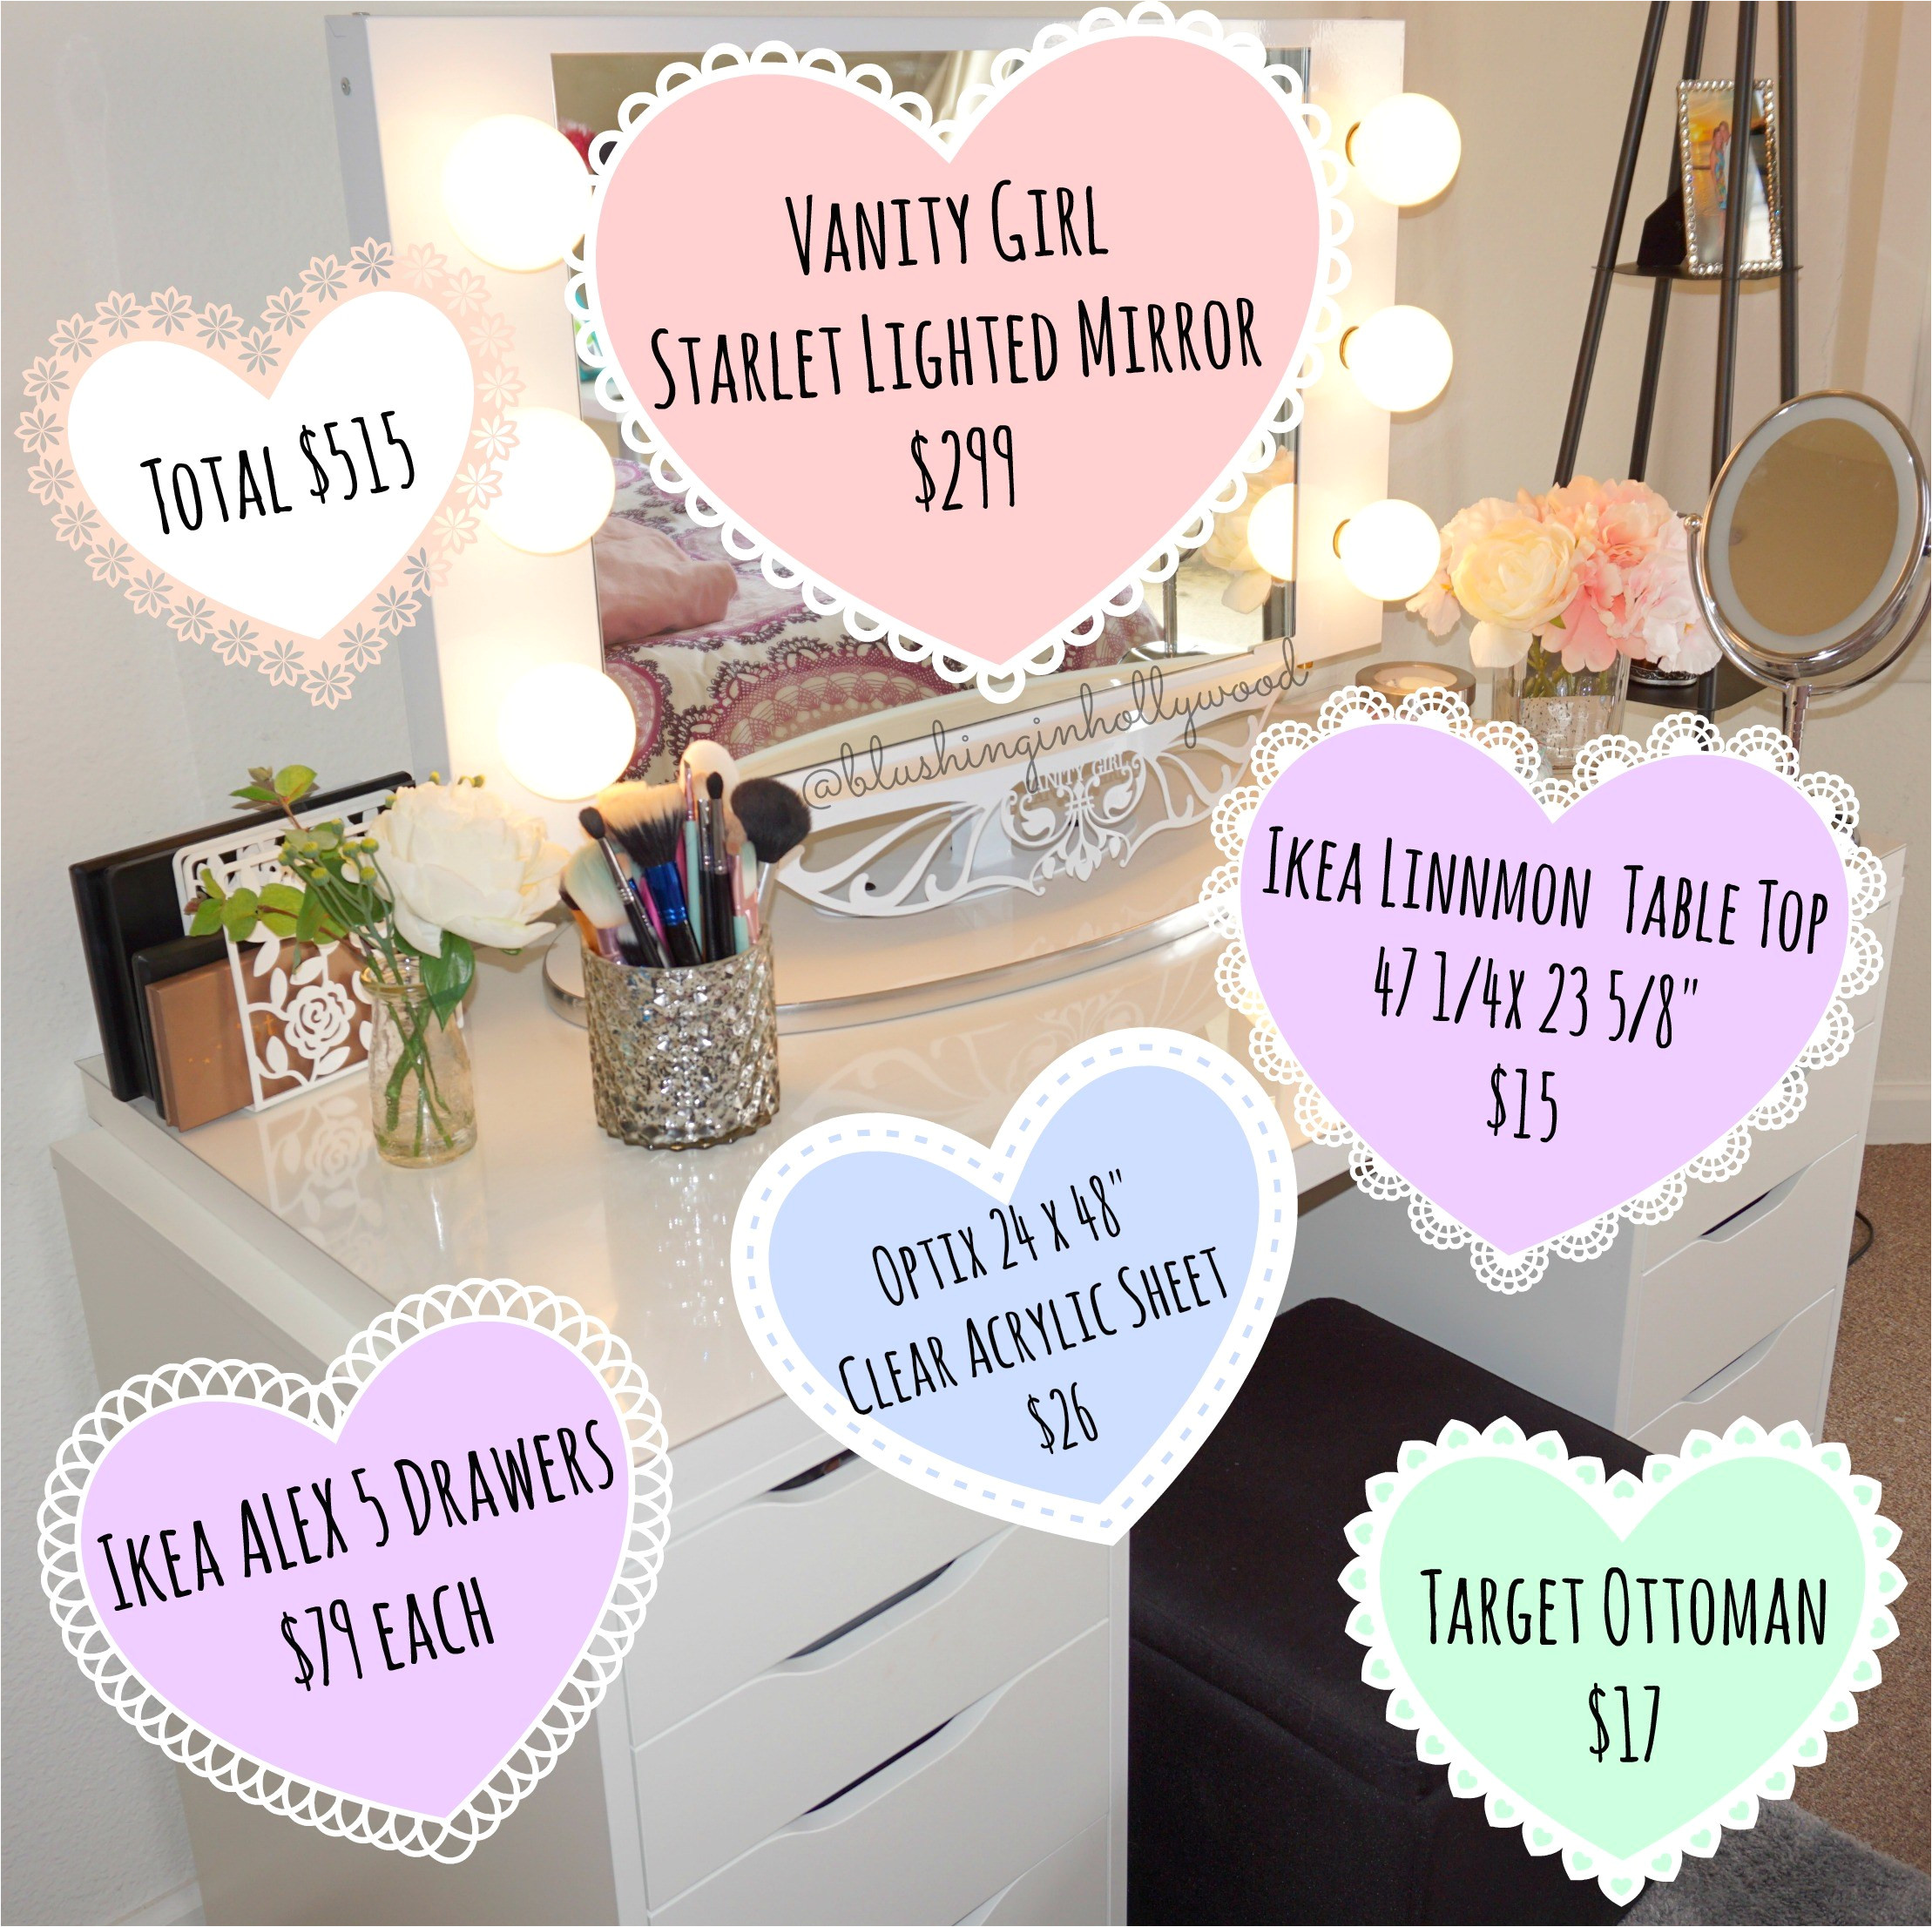 ikea alex vanity using a vanity girl hollywood starlet lighted mirror two ikea alex 5 drawers ikea linnmon table top clear acrylic sheet to protect the